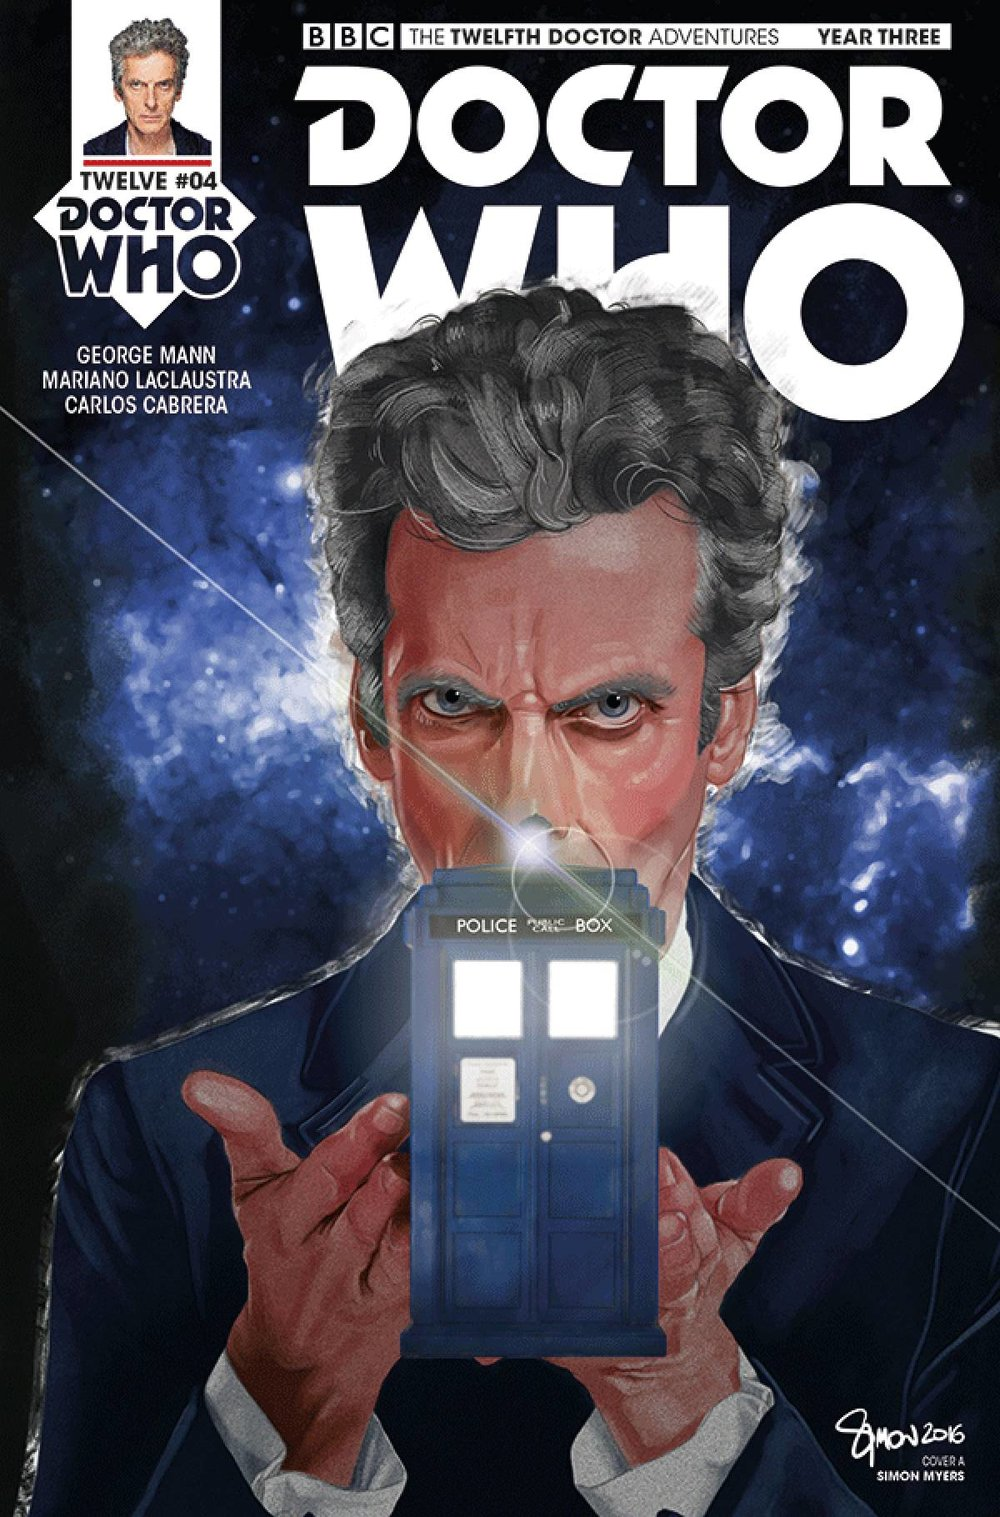 DOCTOR WHO 12TH YEAR THREE 4 CVR A MYERS.jpg